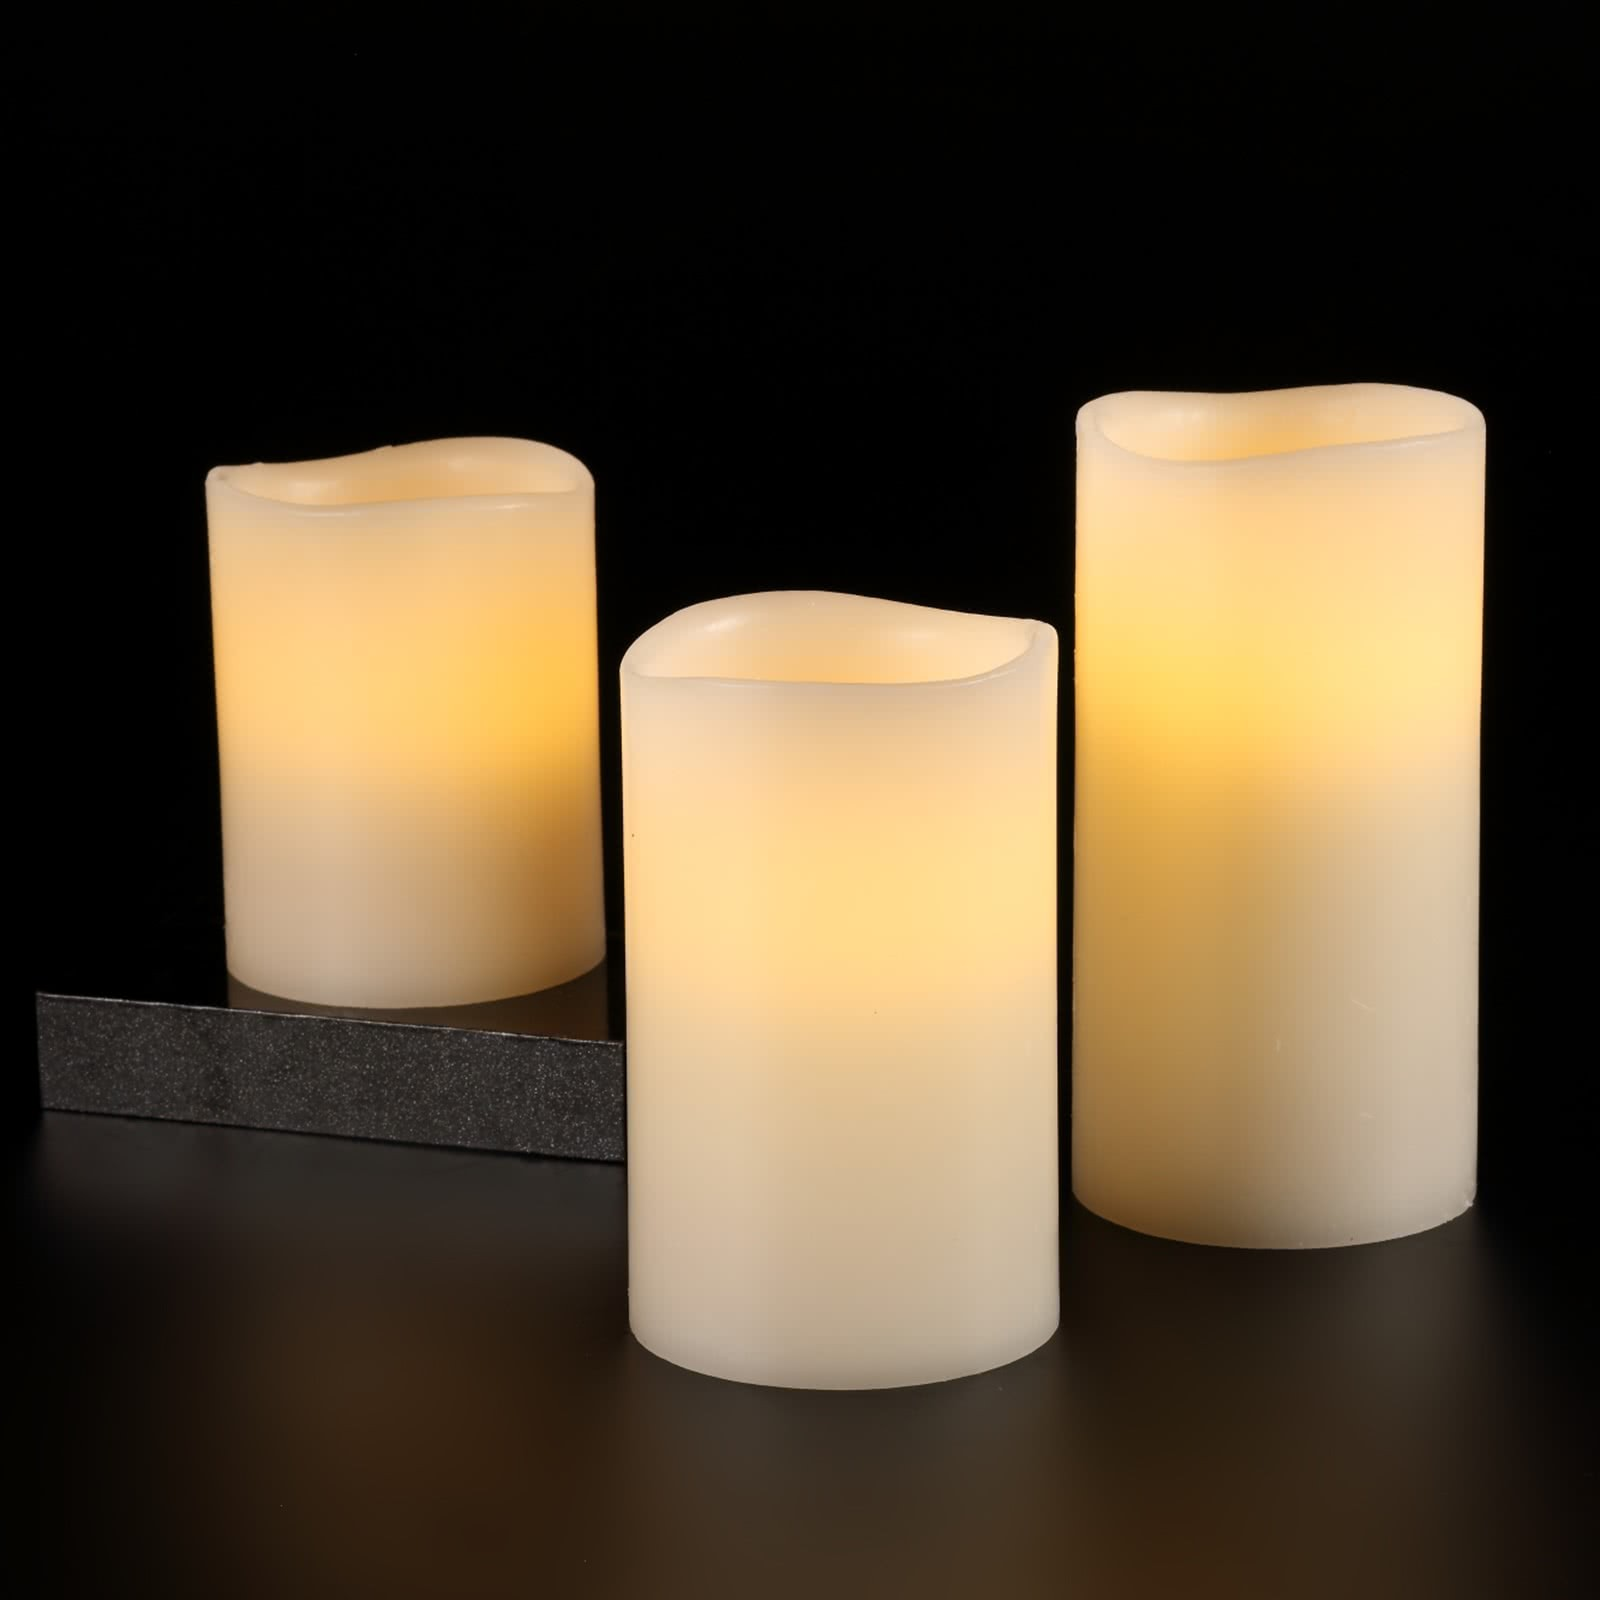 kerzen interesting kerzen with kerzen latest ikea candles candles holders wie z b skurar. Black Bedroom Furniture Sets. Home Design Ideas